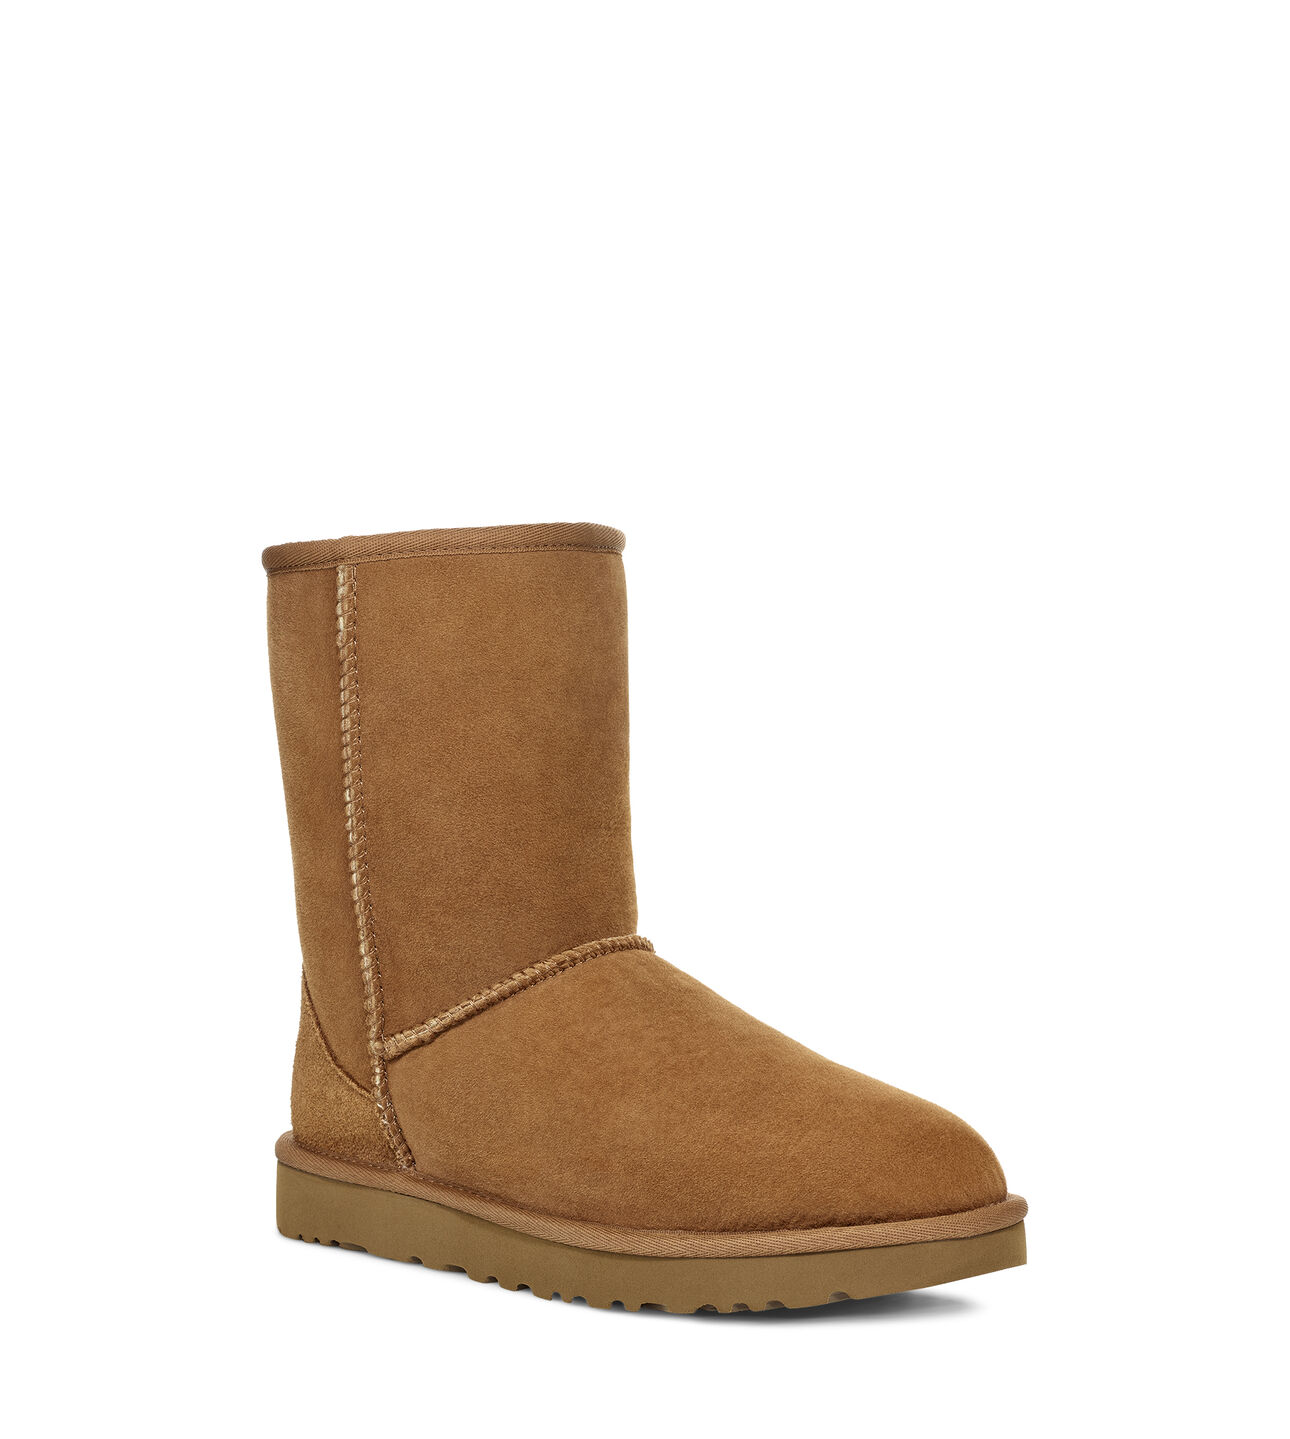 ugg boots Ugg outlet store online sells ugg boots and slippers for men,women and kids in a range of styles,cheap ugg boots clearance sale 100% price guarantee.